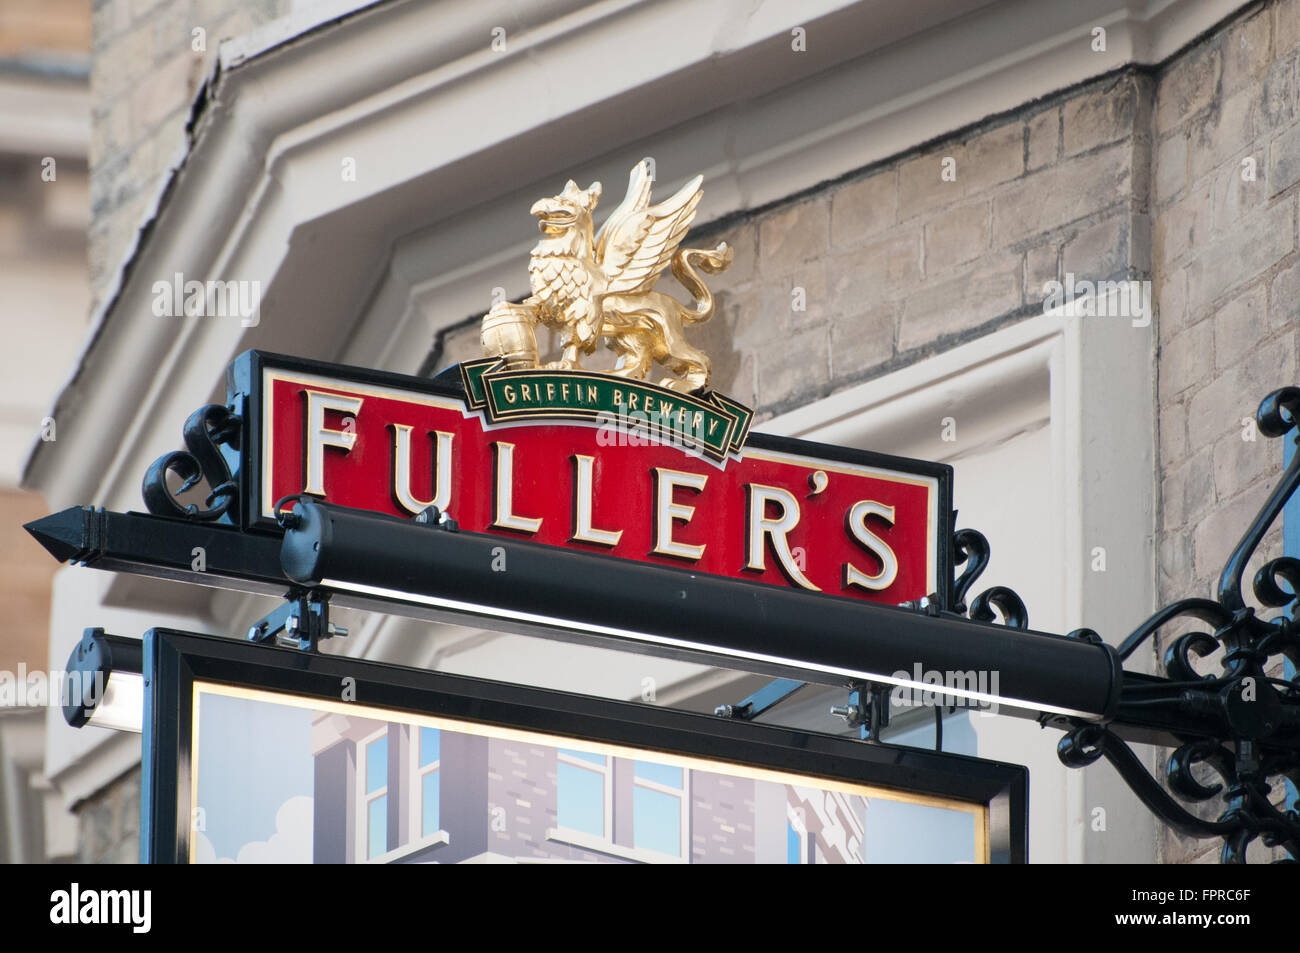 Fuller's Brewery Pub in Garrick Street,Covent Garden London exterior with sign. - Stock Image